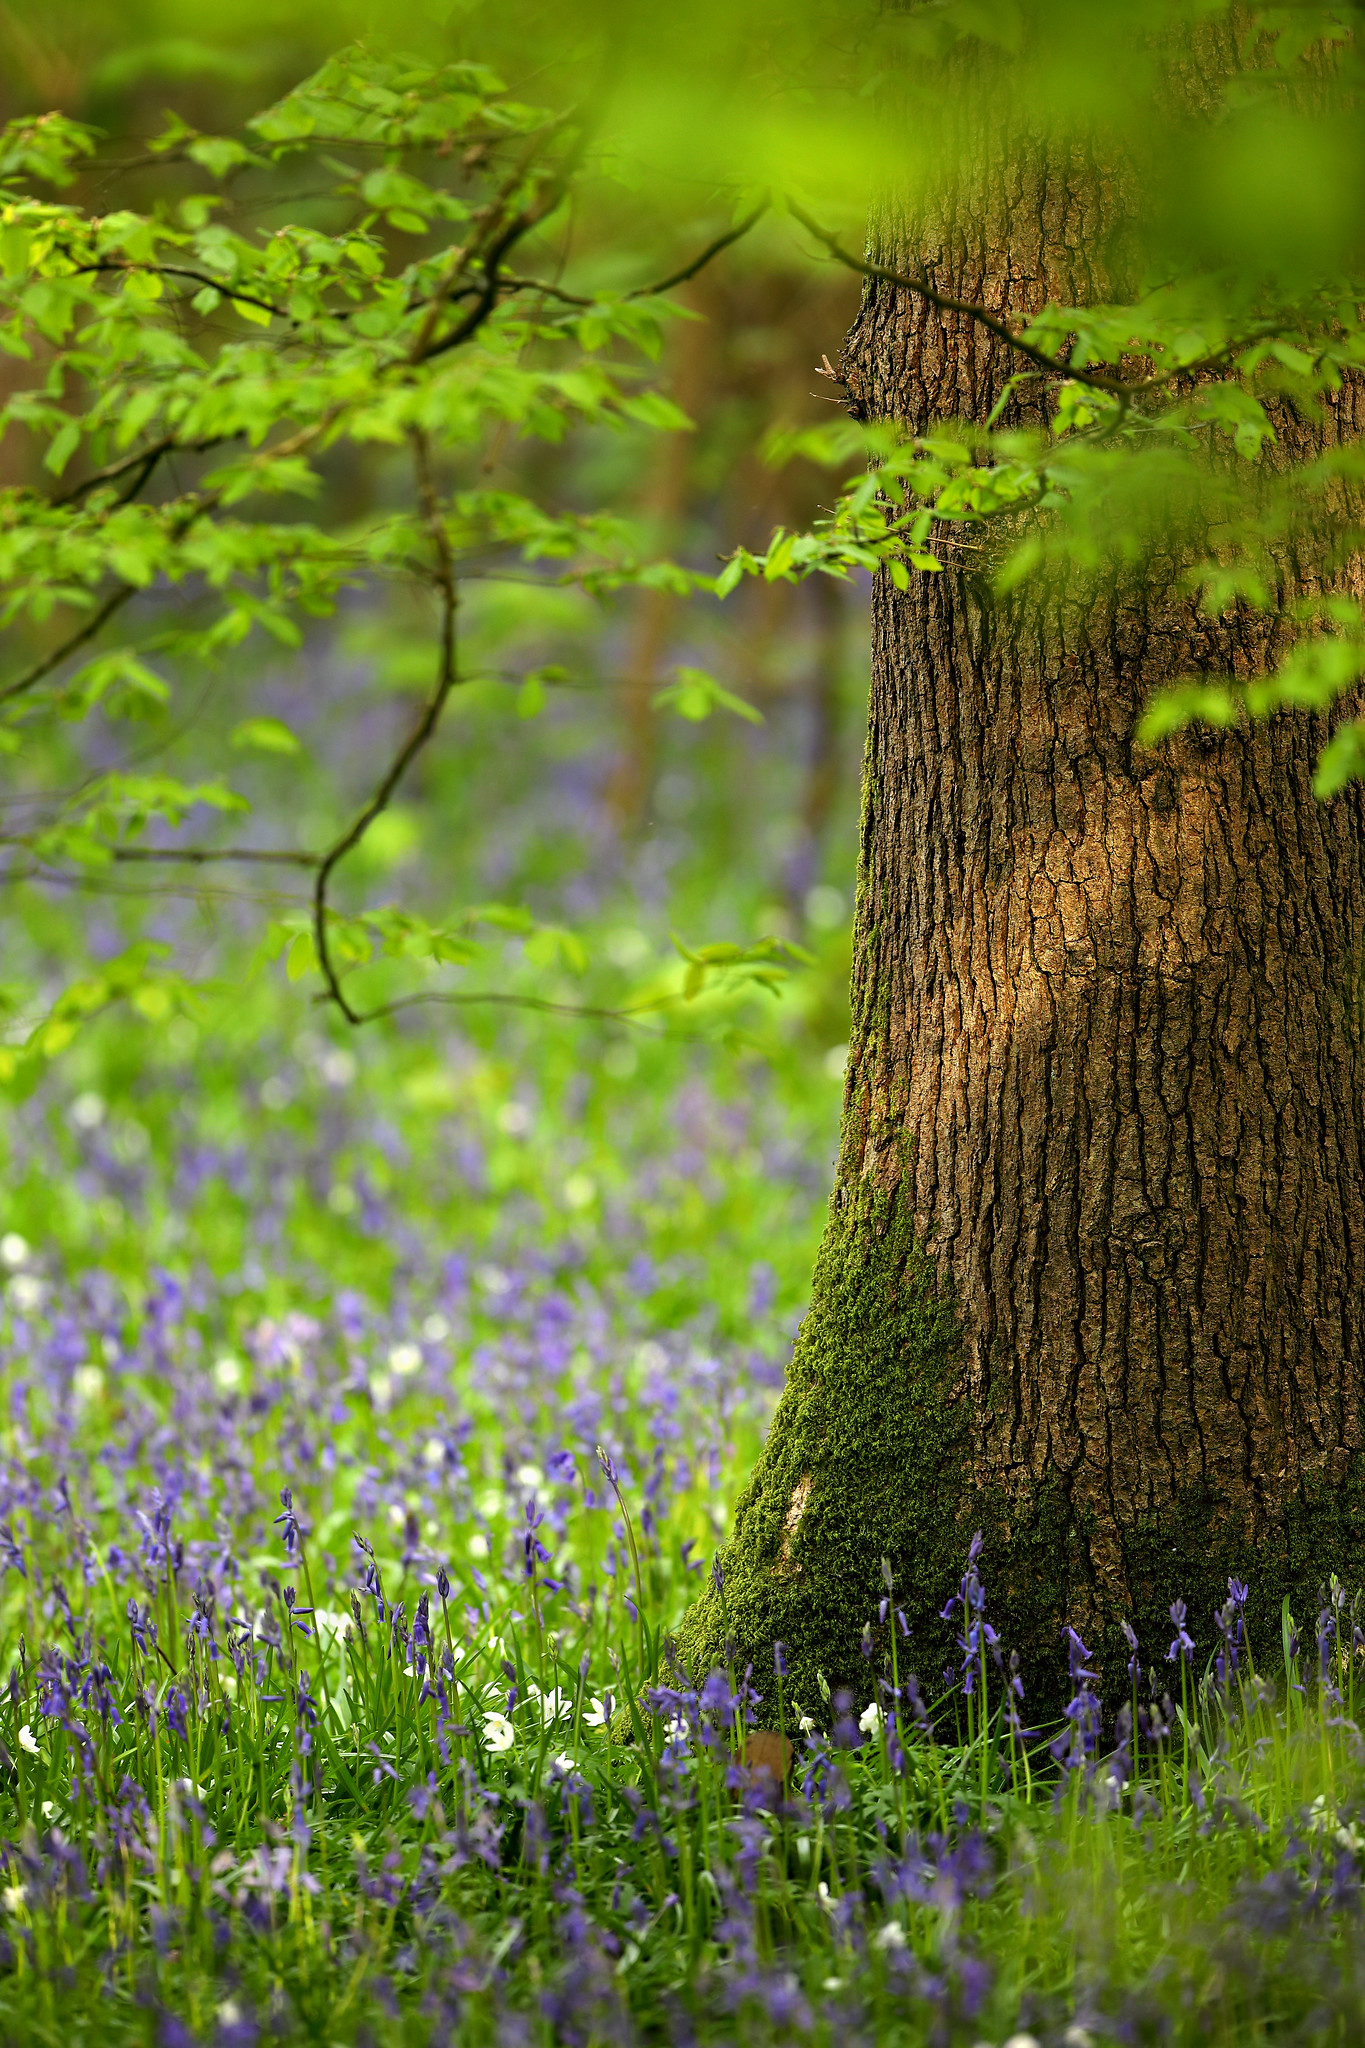 Bluebells, Wood Anemones and Oak, Abbot's Wood